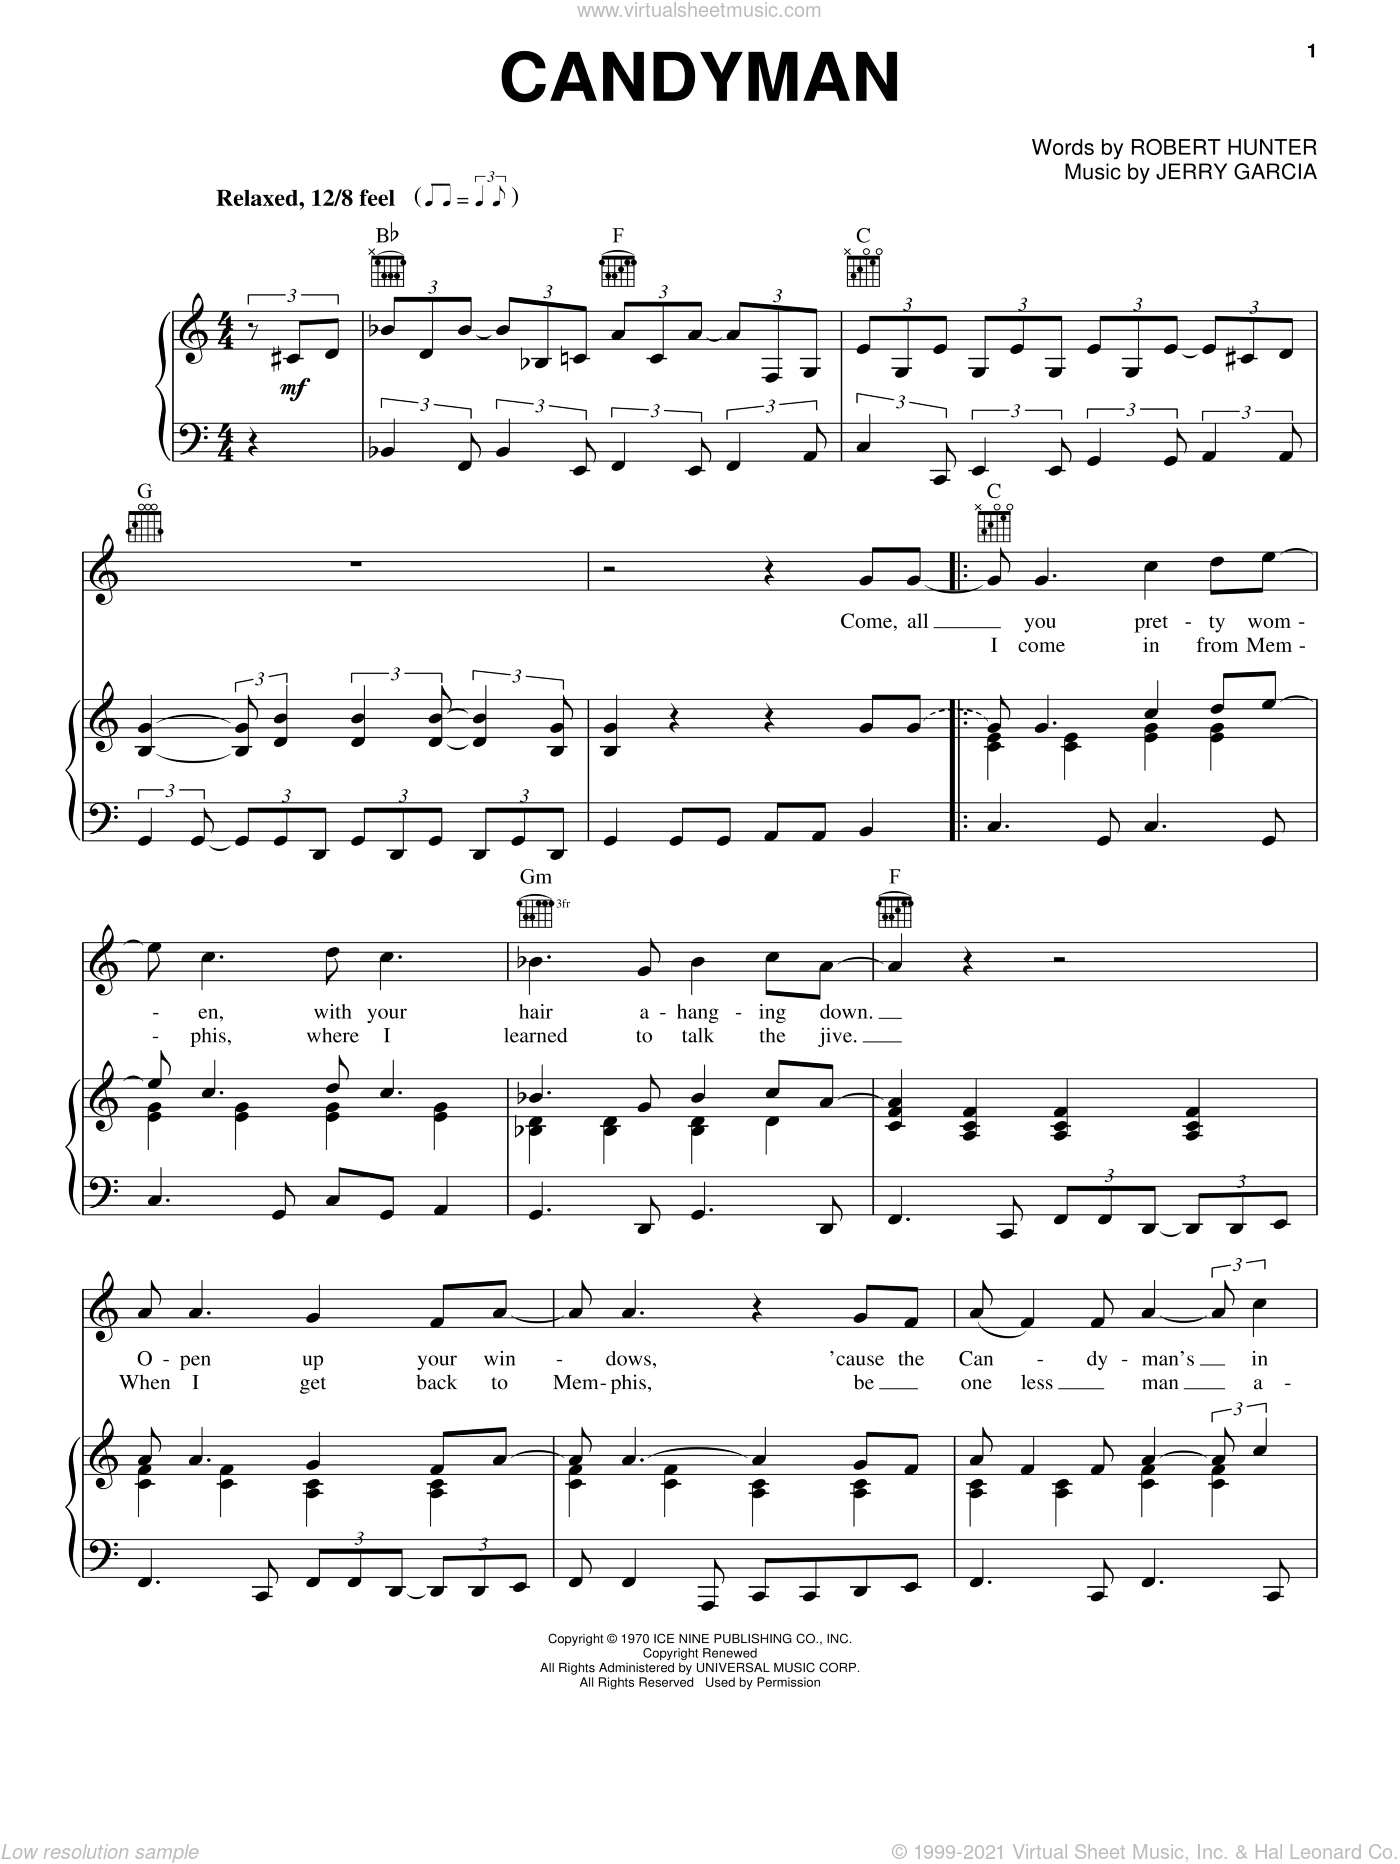 Candyman sheet music for voice, piano or guitar by Grateful Dead, Jerry Garcia and Robert Hunter, intermediate skill level